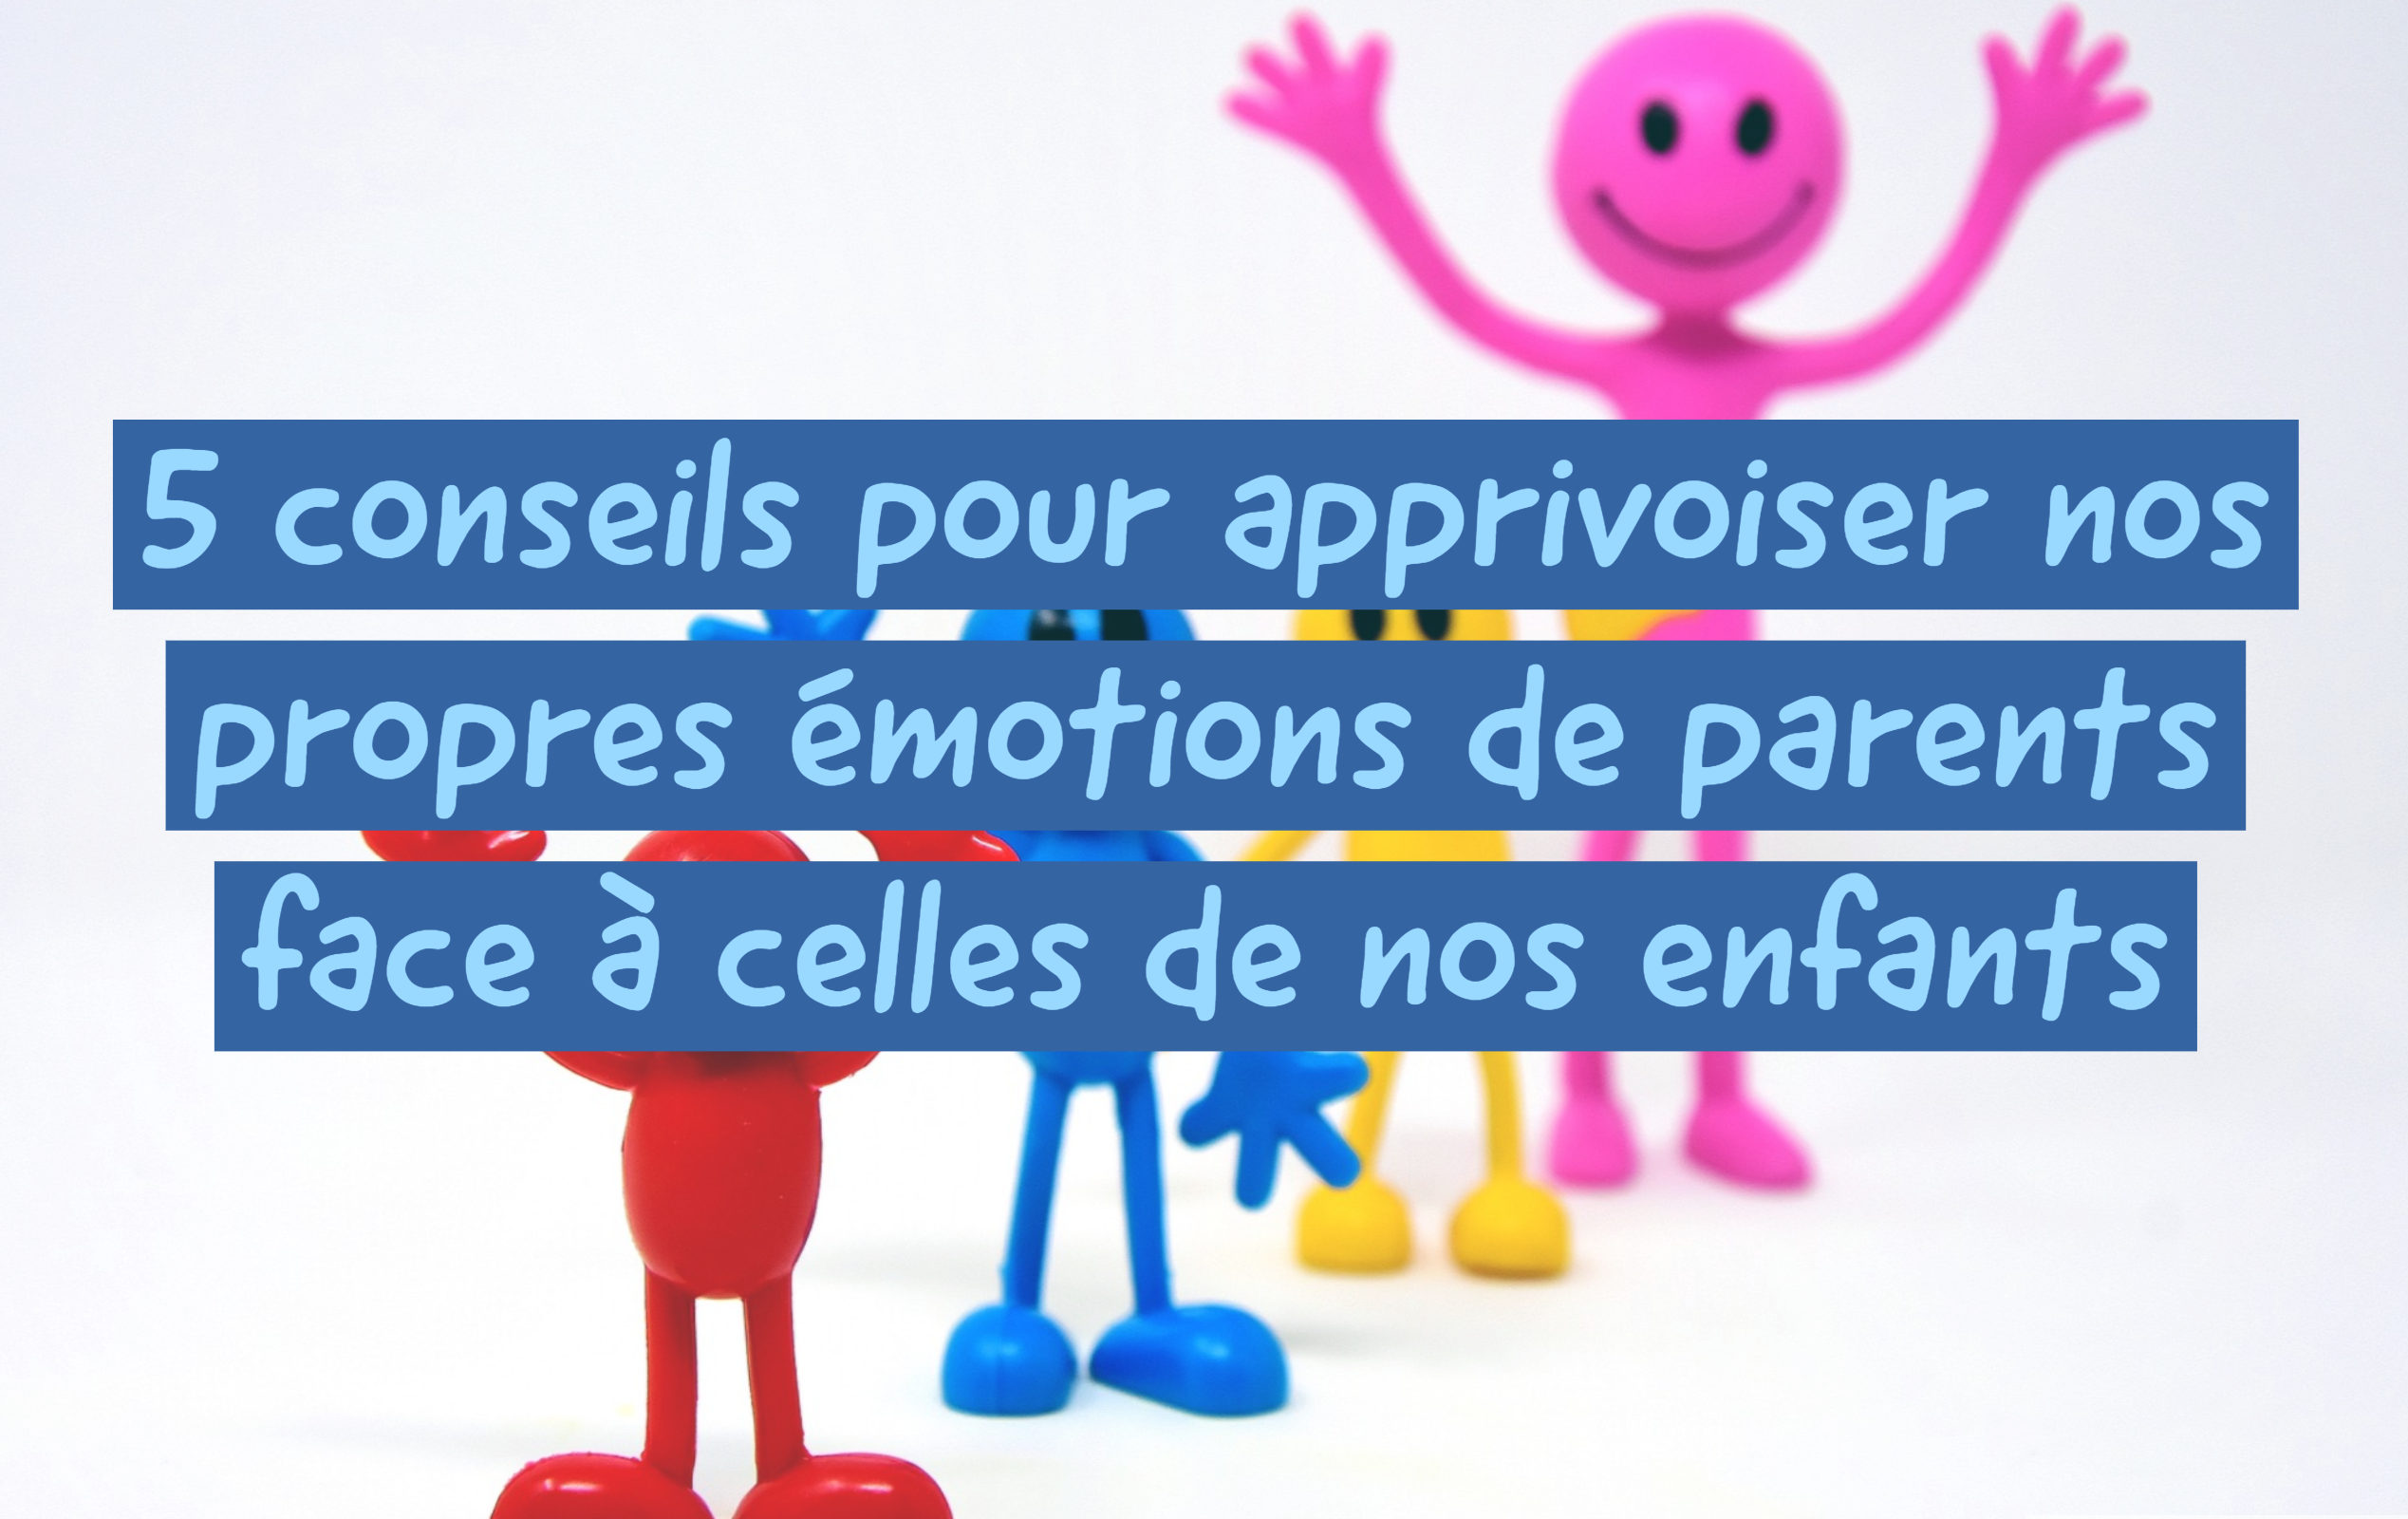 apprivoiser émotions de parents face enfants